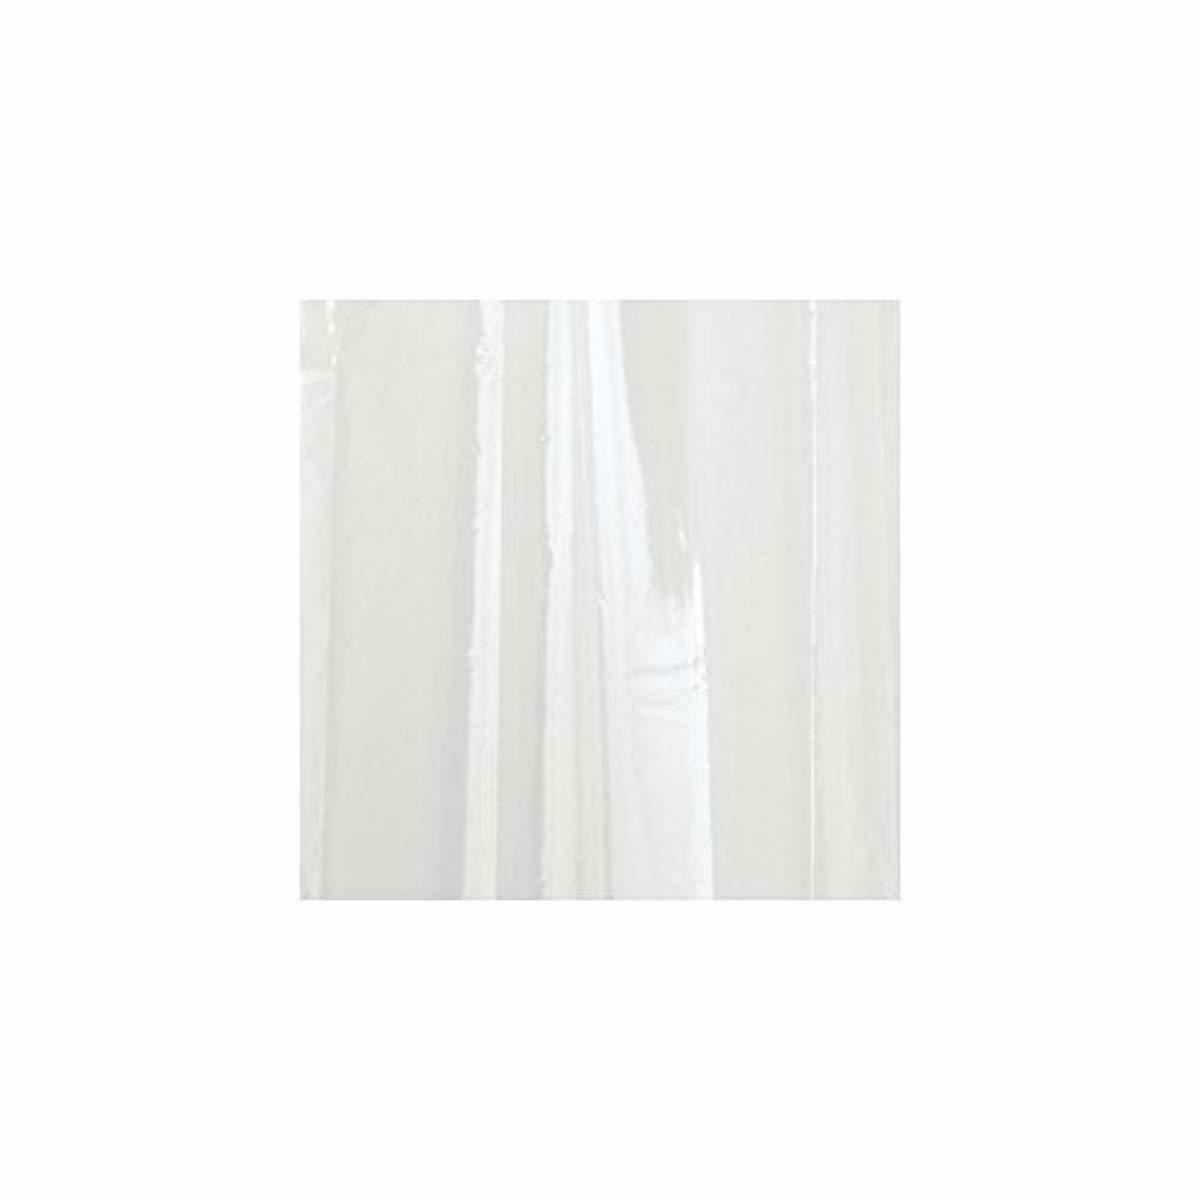 "Clear Shower Curtain Liner Bath Water Proof Mold and Mildew Resistant 72"" x 72"" image 2"